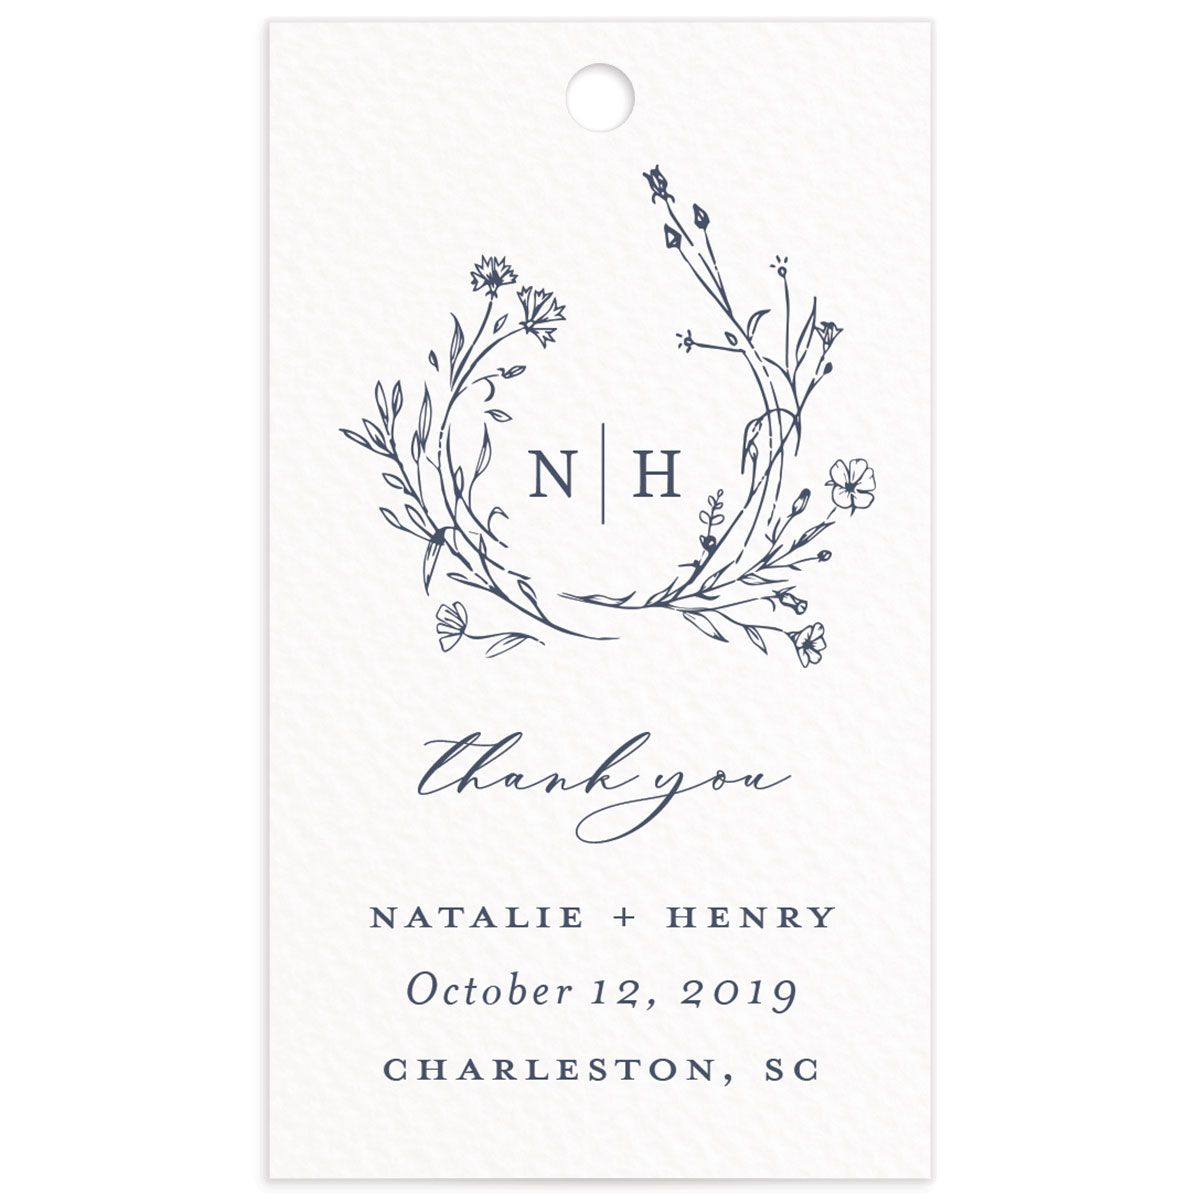 Natural Monogram wedding favor gift tag fronts in blue